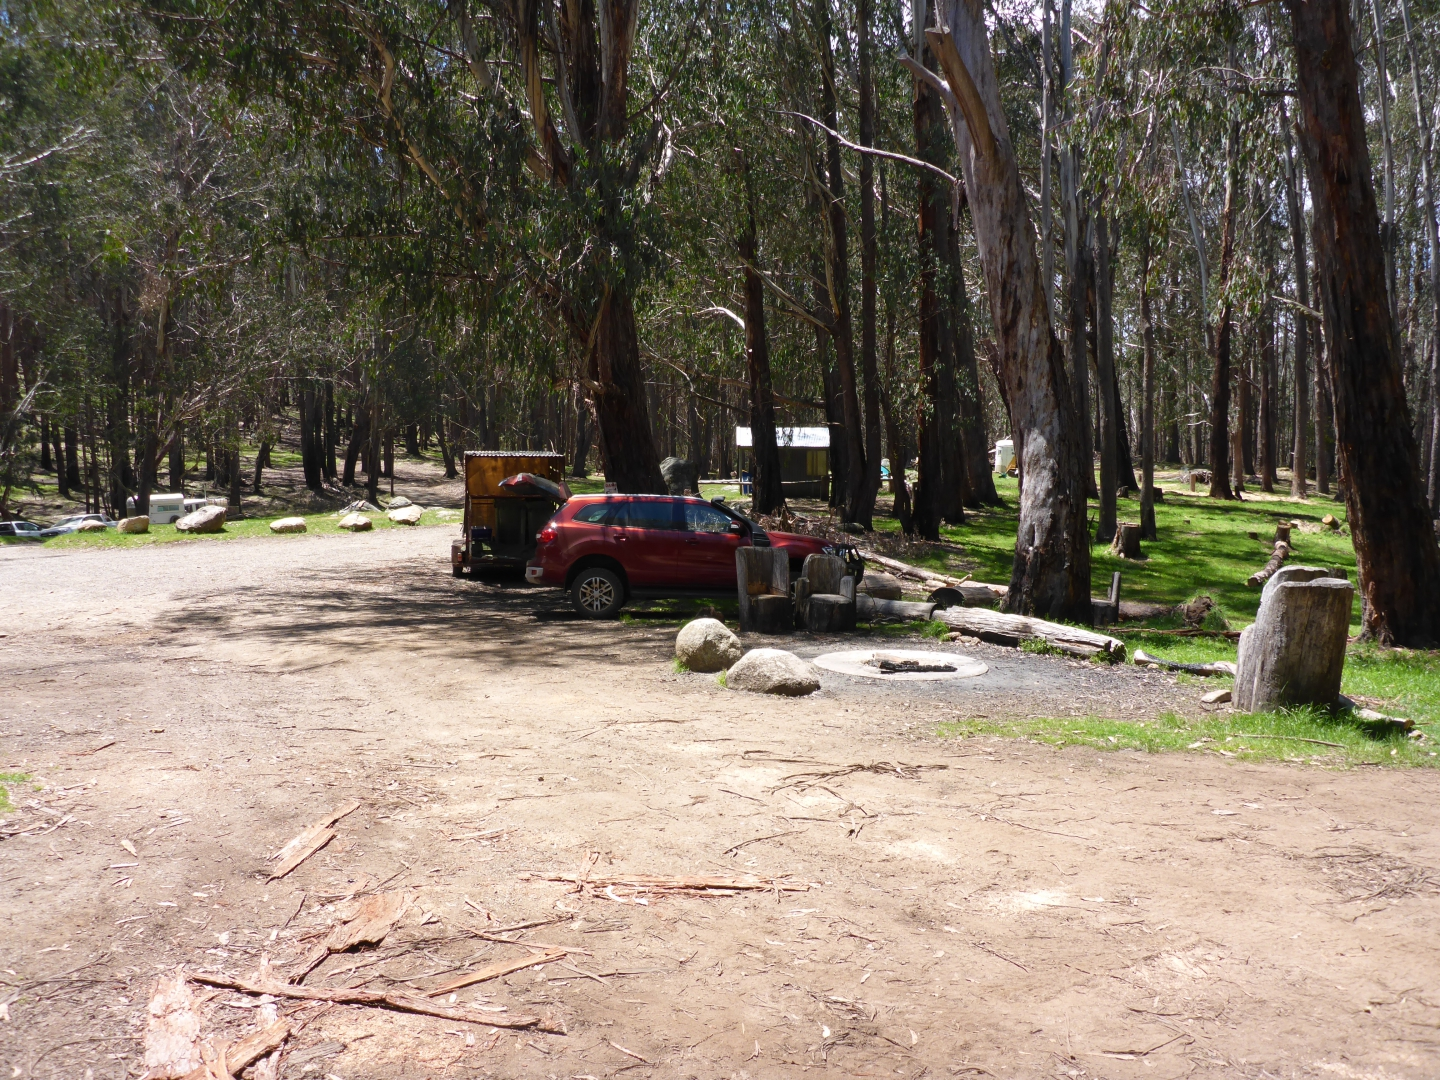 Razorback hut camping area complete with toilets and bins